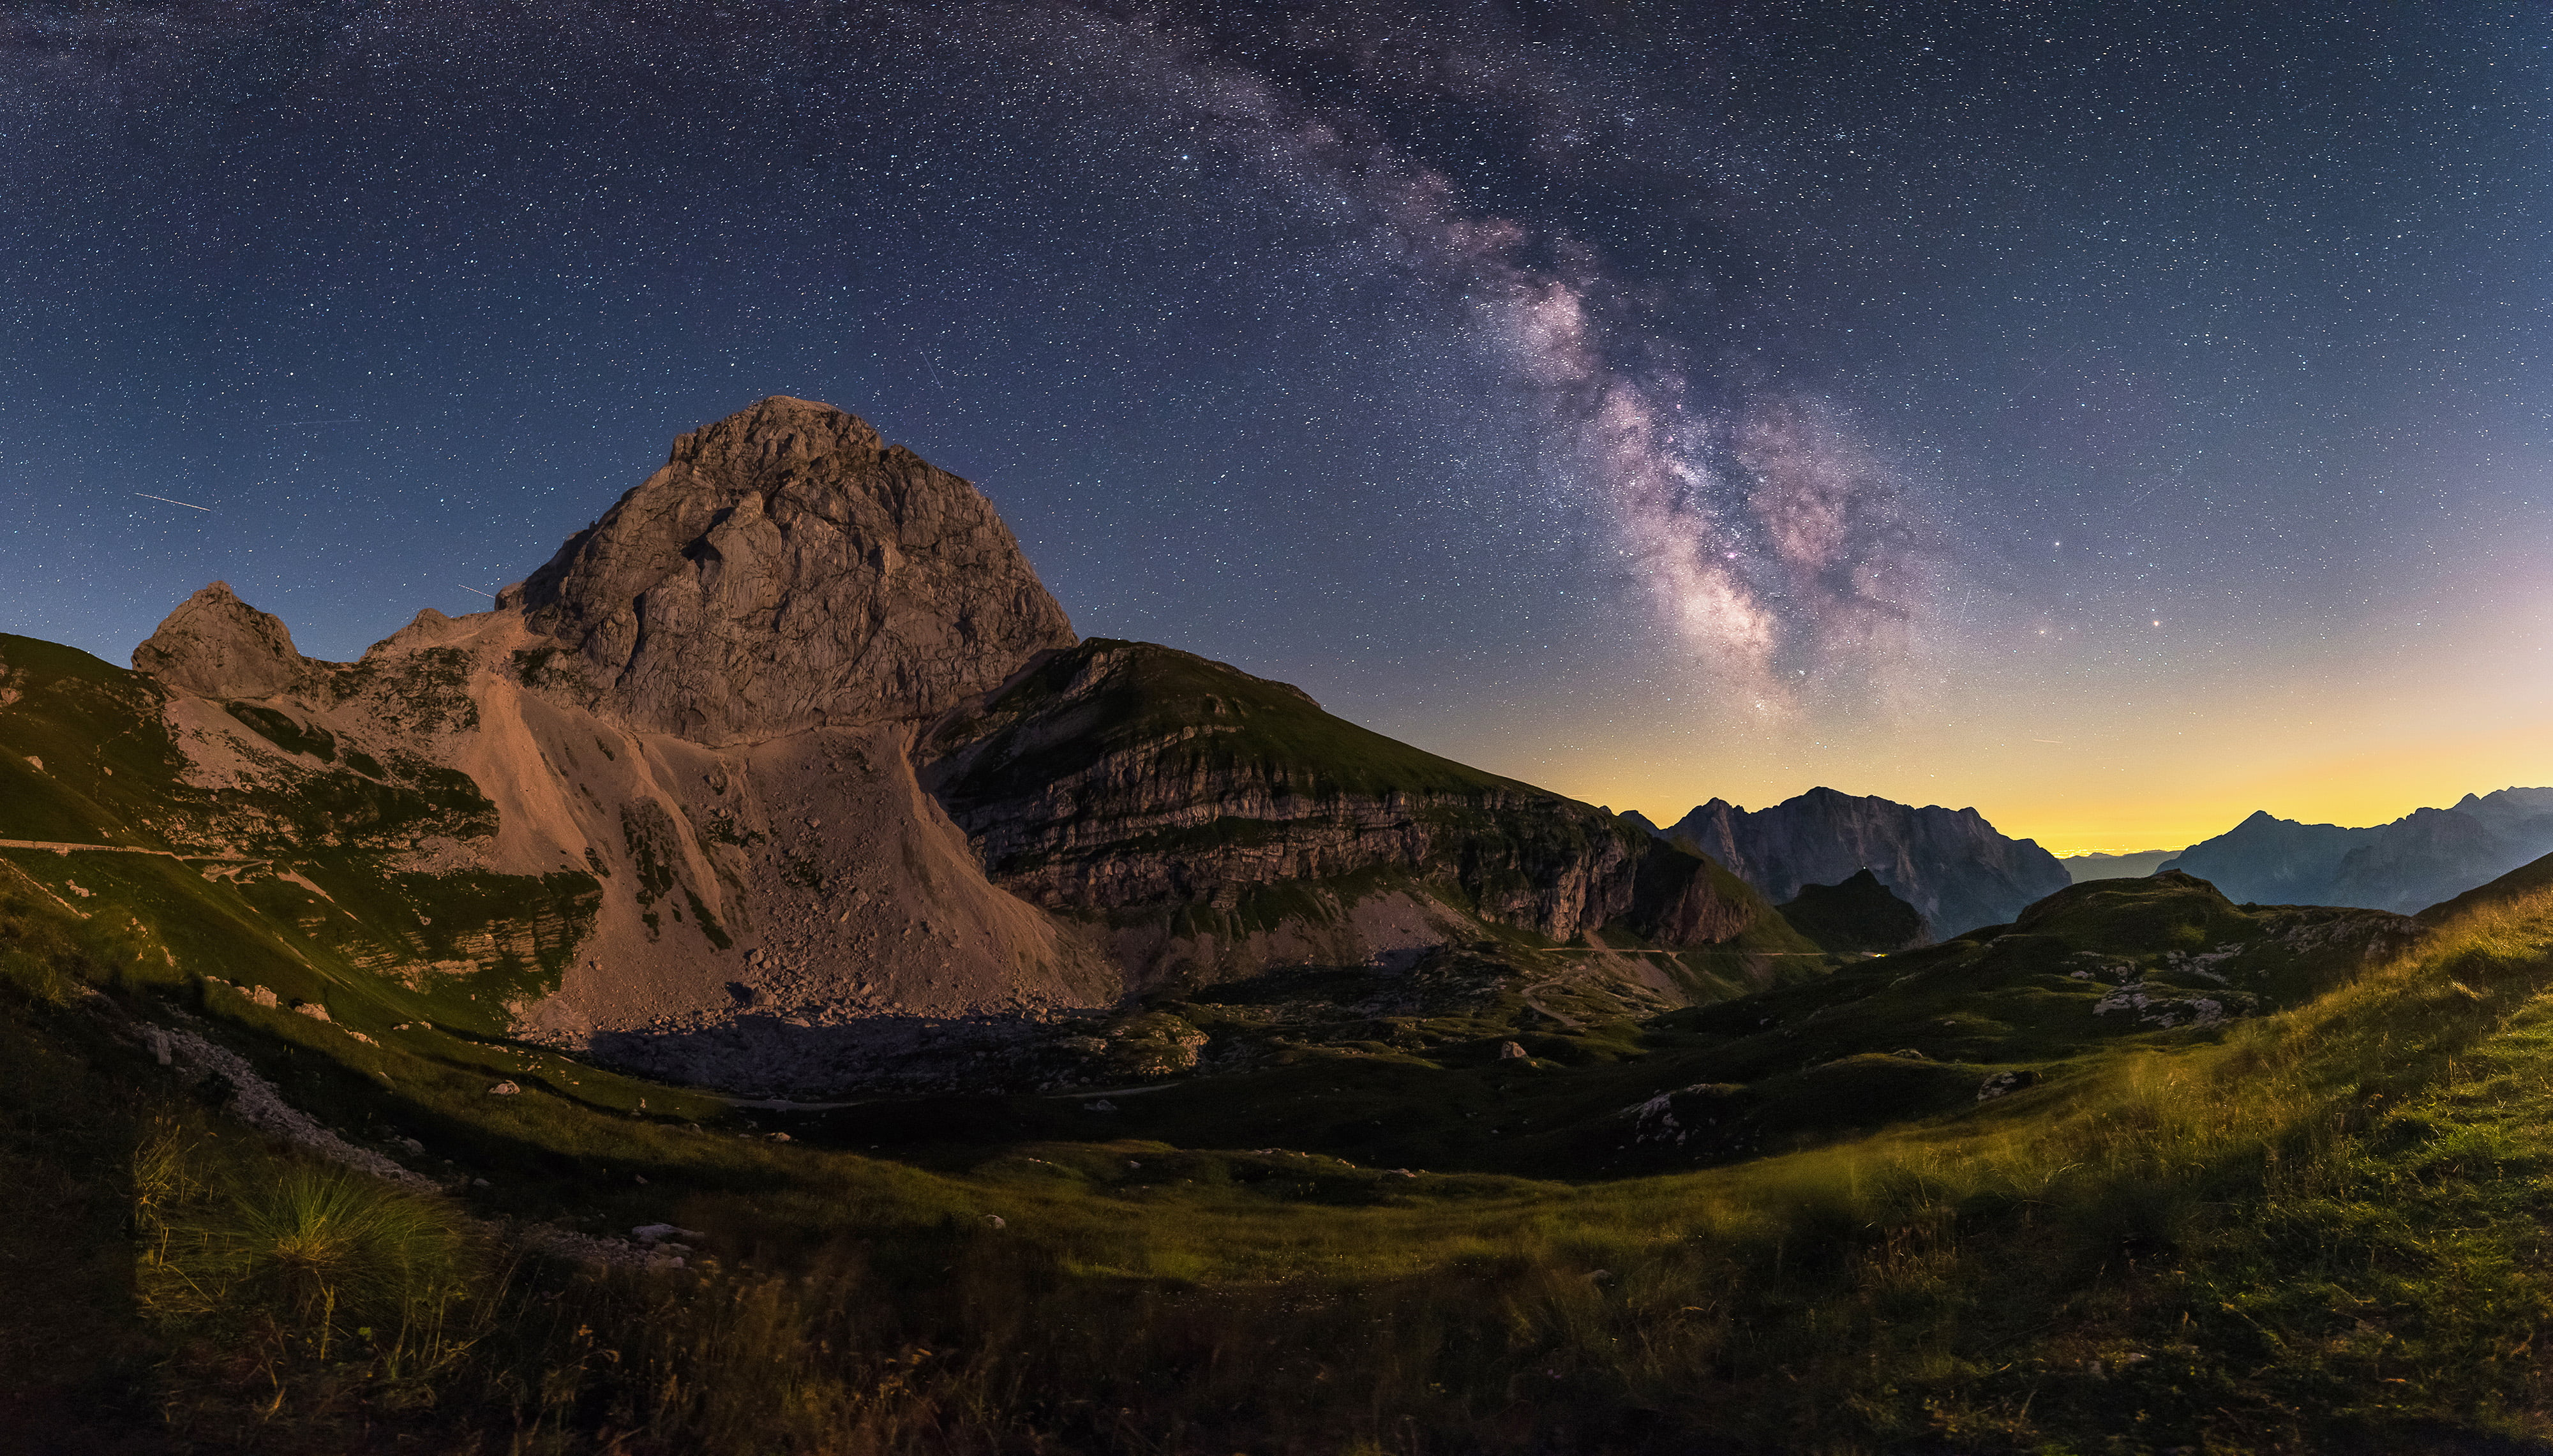 Milky Way over the Mangart saddle in Julian Alps in Slovenia